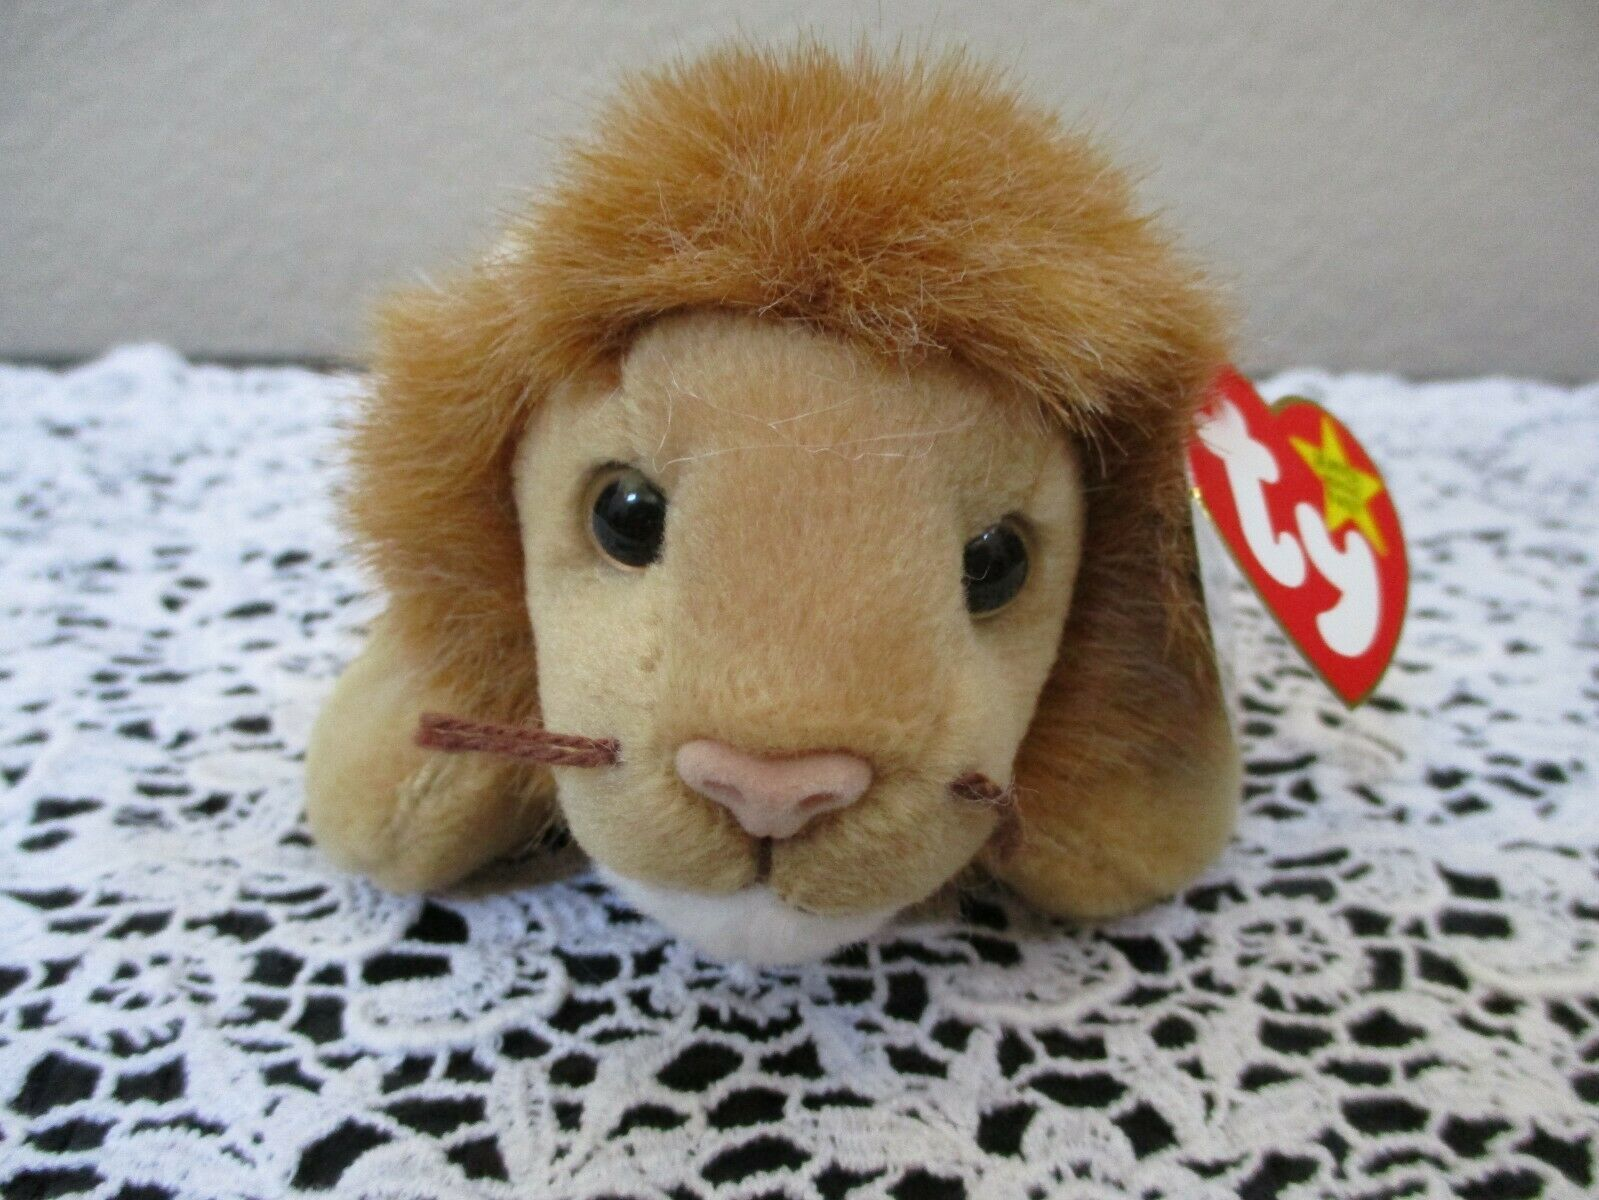 Primary image for Ty Beanie Baby Roary 1996 5th Generation 2 Hang Tag Errors Misprints